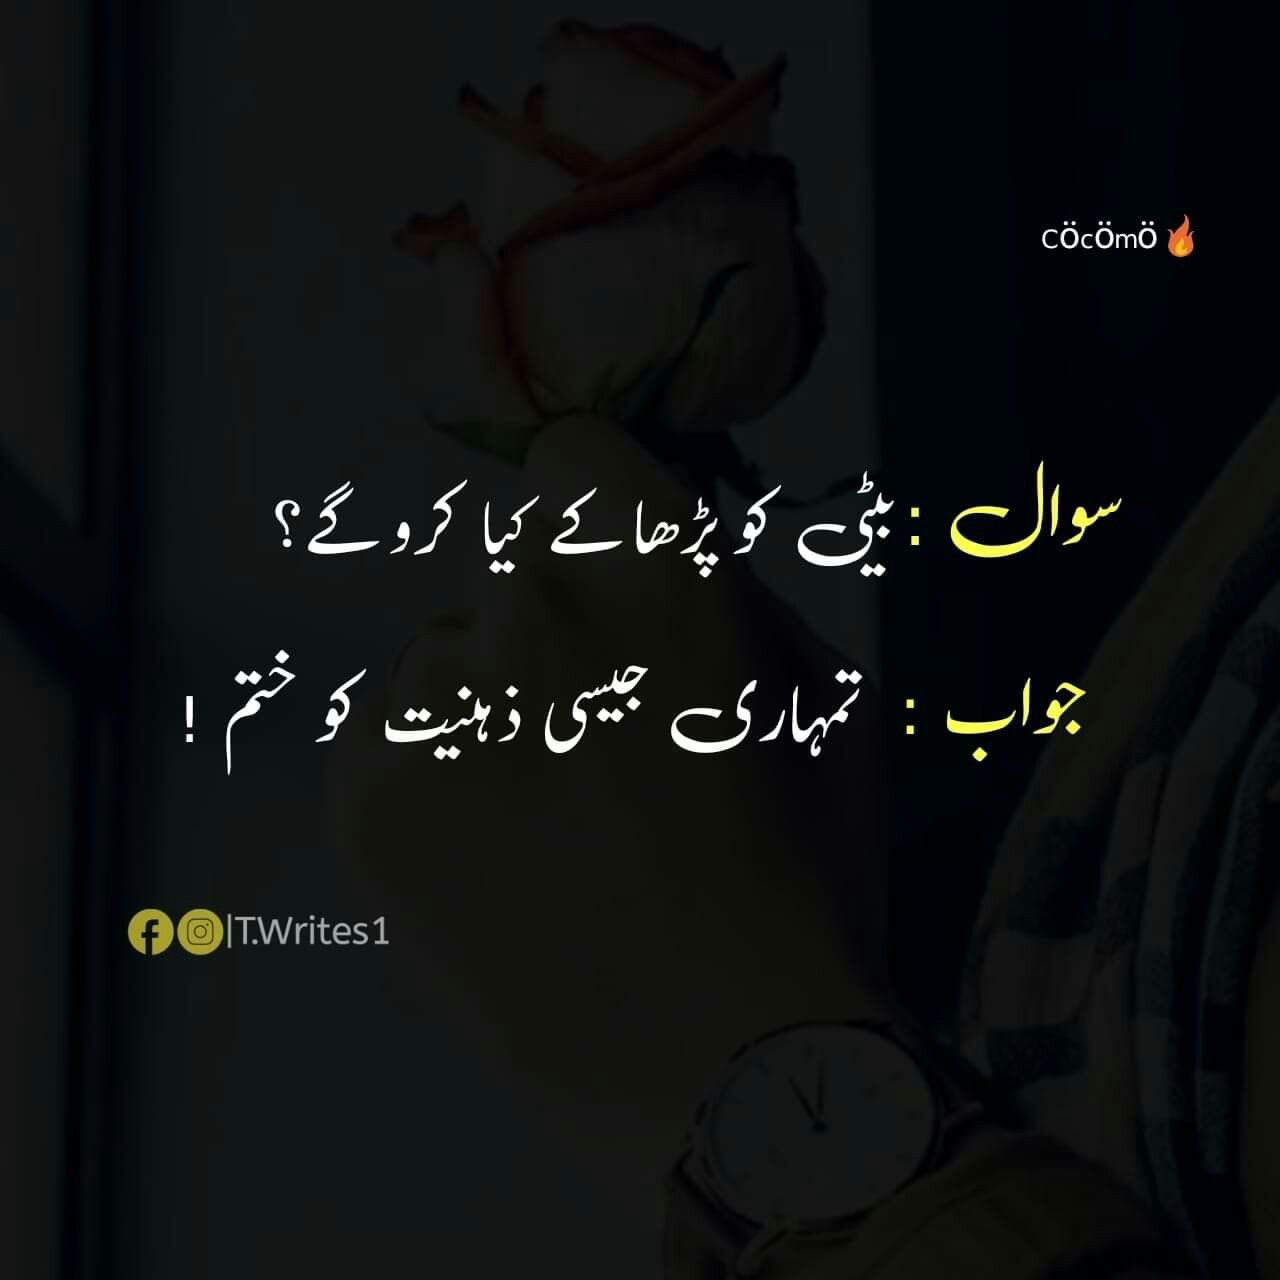 Pin By Rassail Ssaloch On Urdu Quotes With Images Good Thoughts